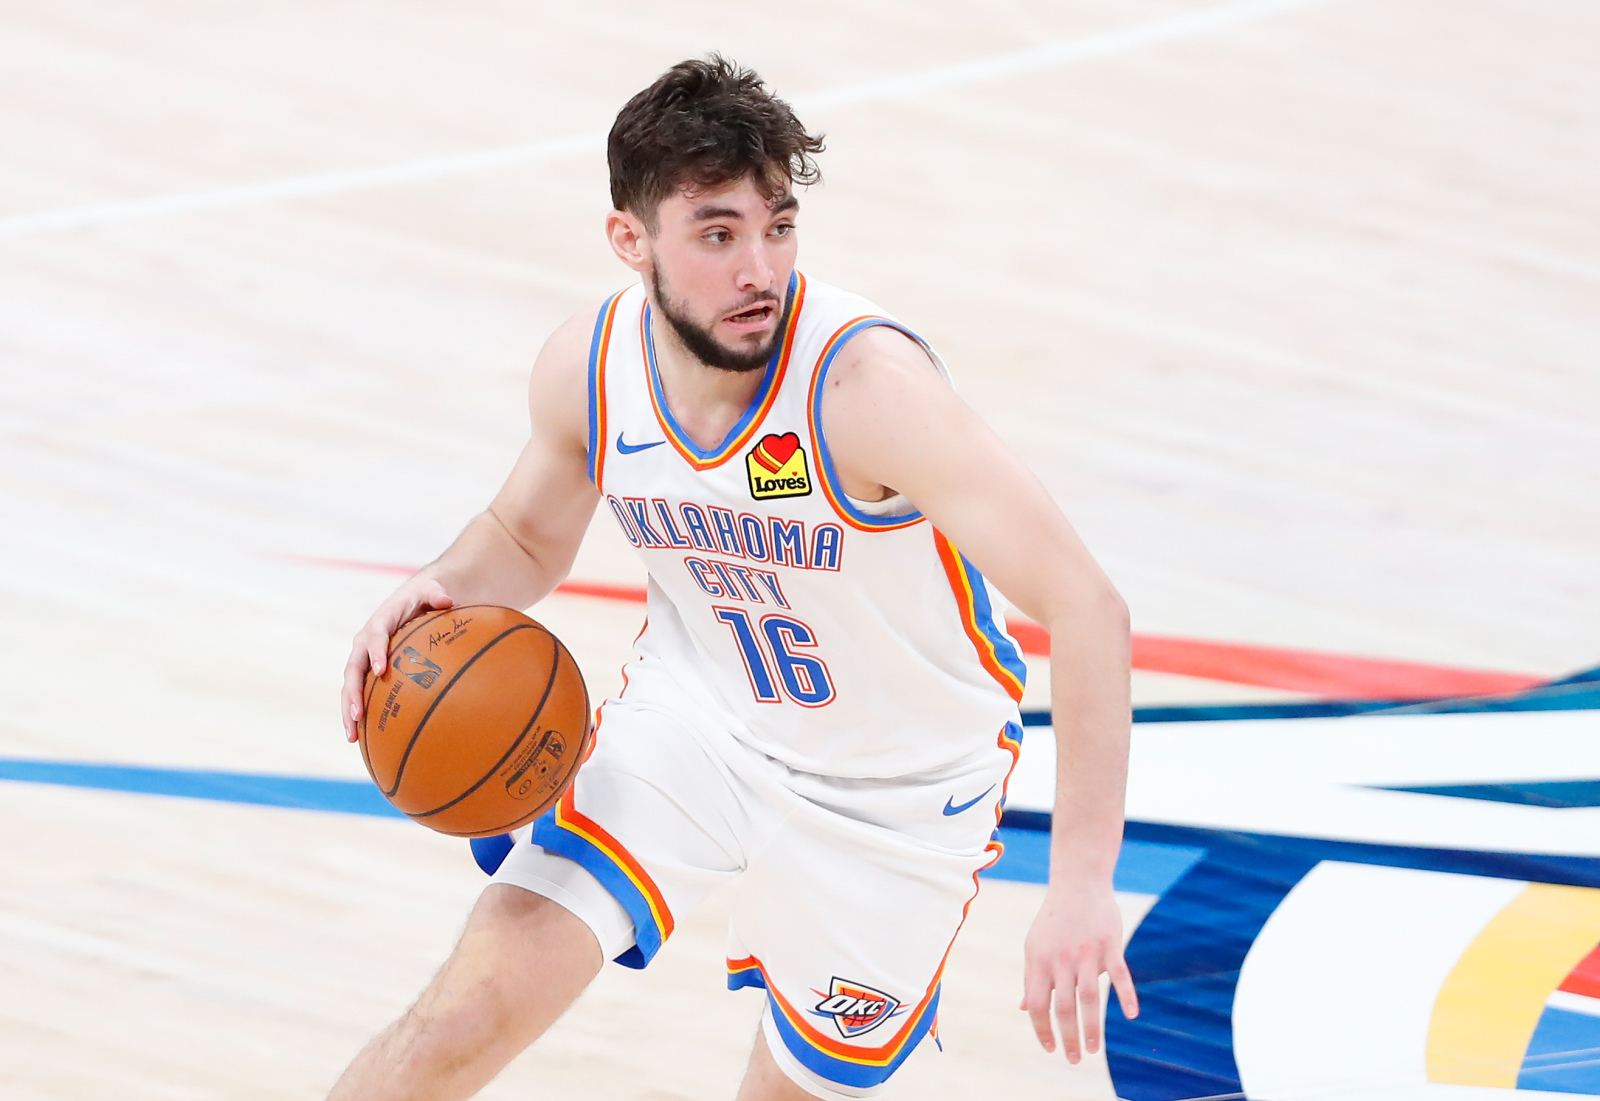 The OKC Thunder may have found yet another hidden gem in Ty Jerome